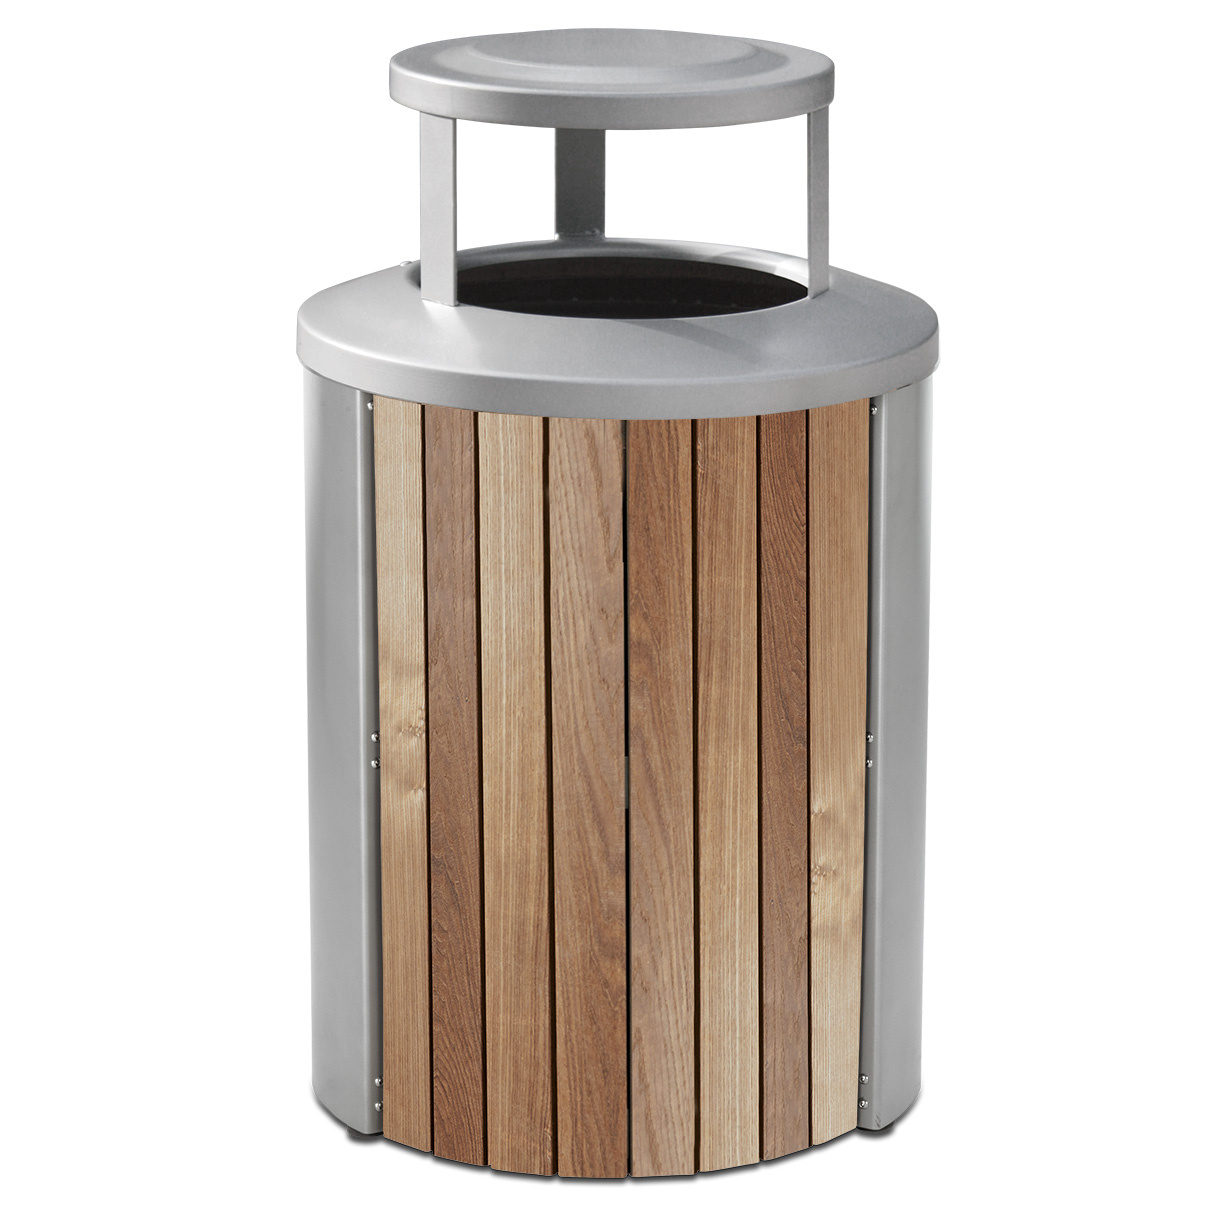 TT35BT  Madison Collection 35 Gallon Thermory Slat Trash Receptacle with Bonnet Top